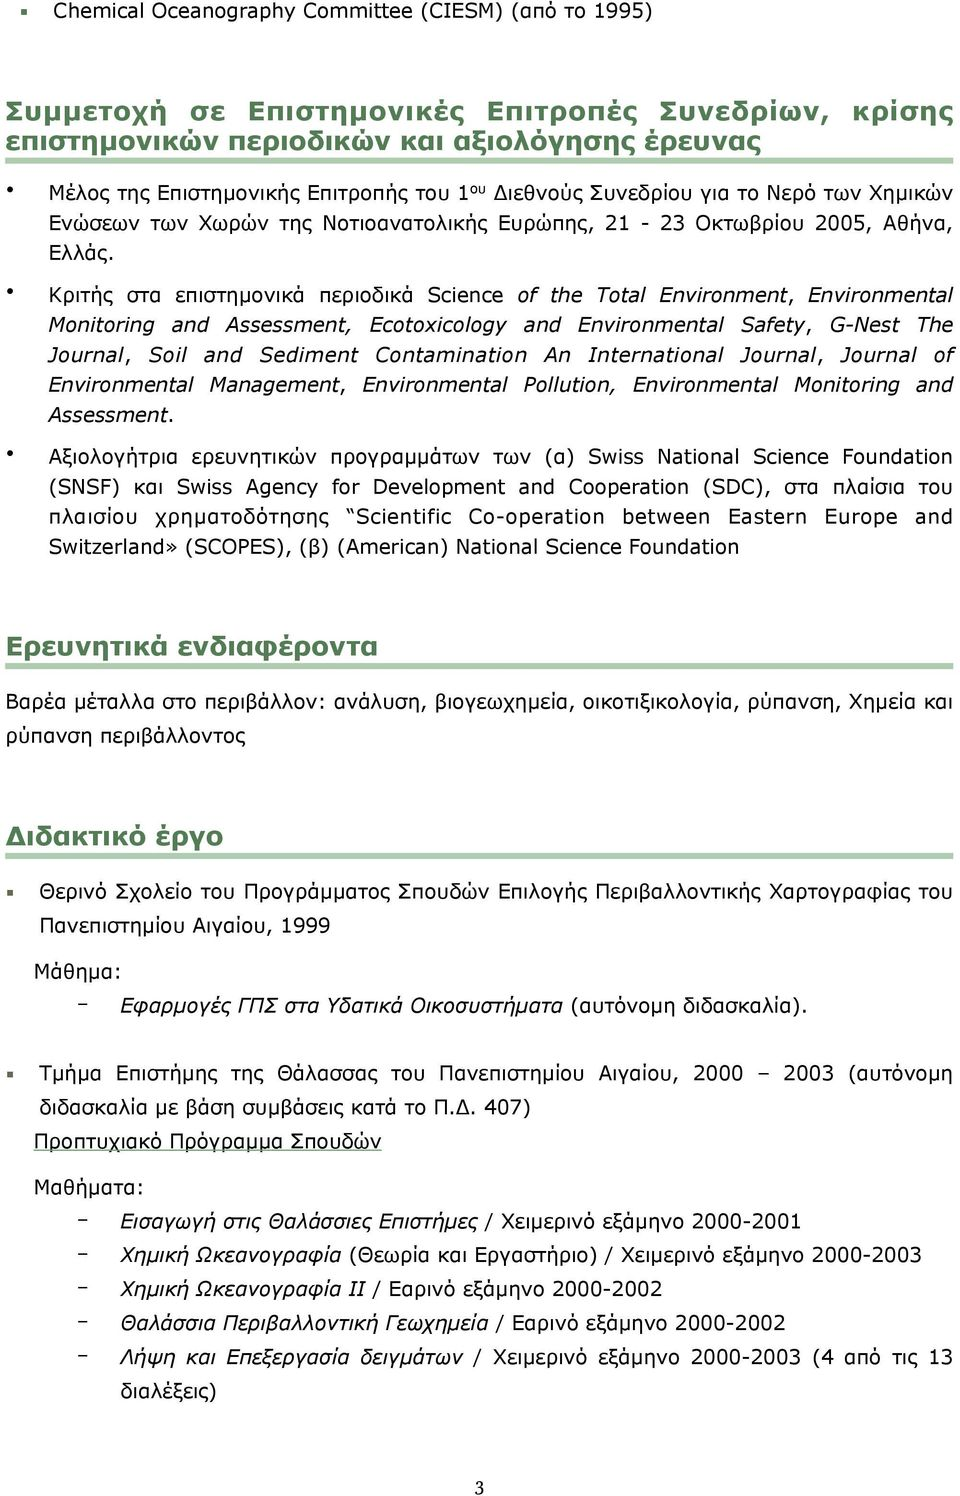 Κριτής στα επιστηµονικά περιοδικά Science of the Total Environment, Environmental Monitoring and Assessment, Ecotoxicology and Environmental Safety, G-Nest The Journal, Soil and Sediment